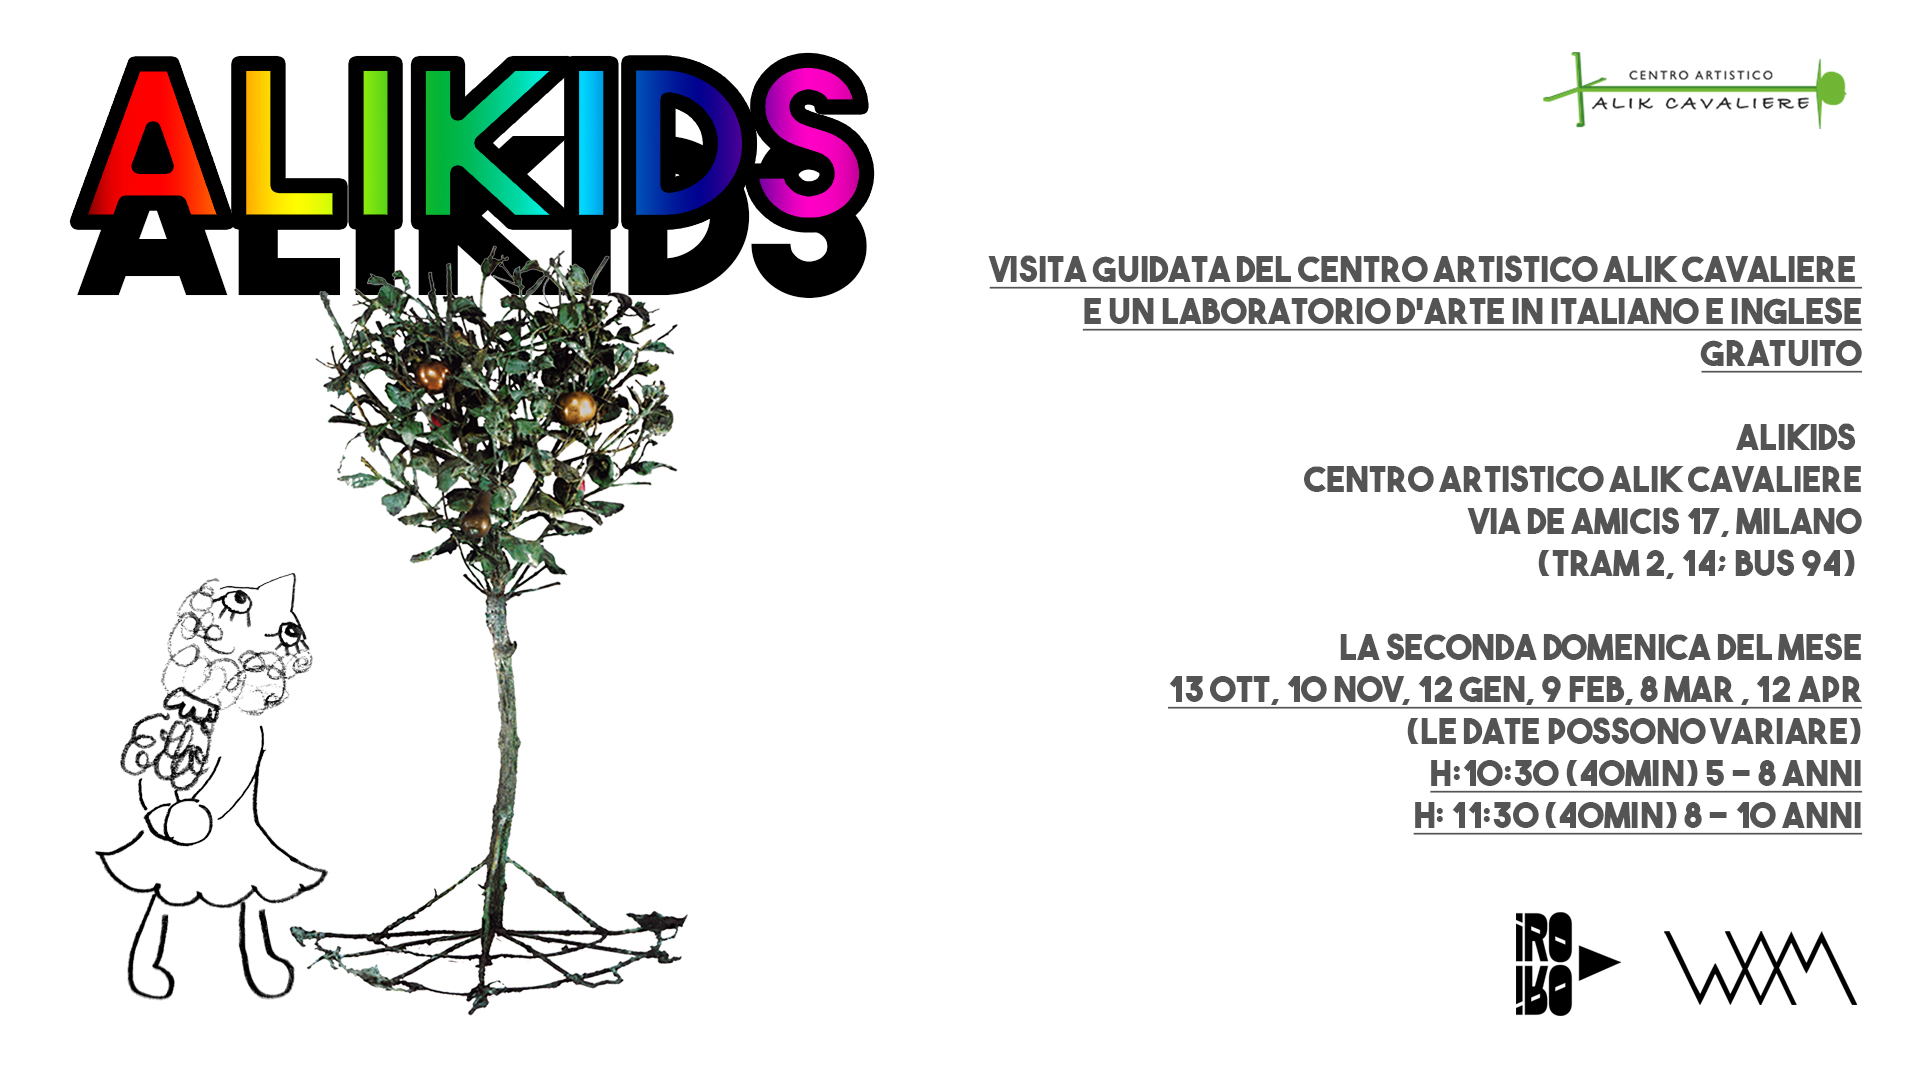 ALIKids Flyer horizontal